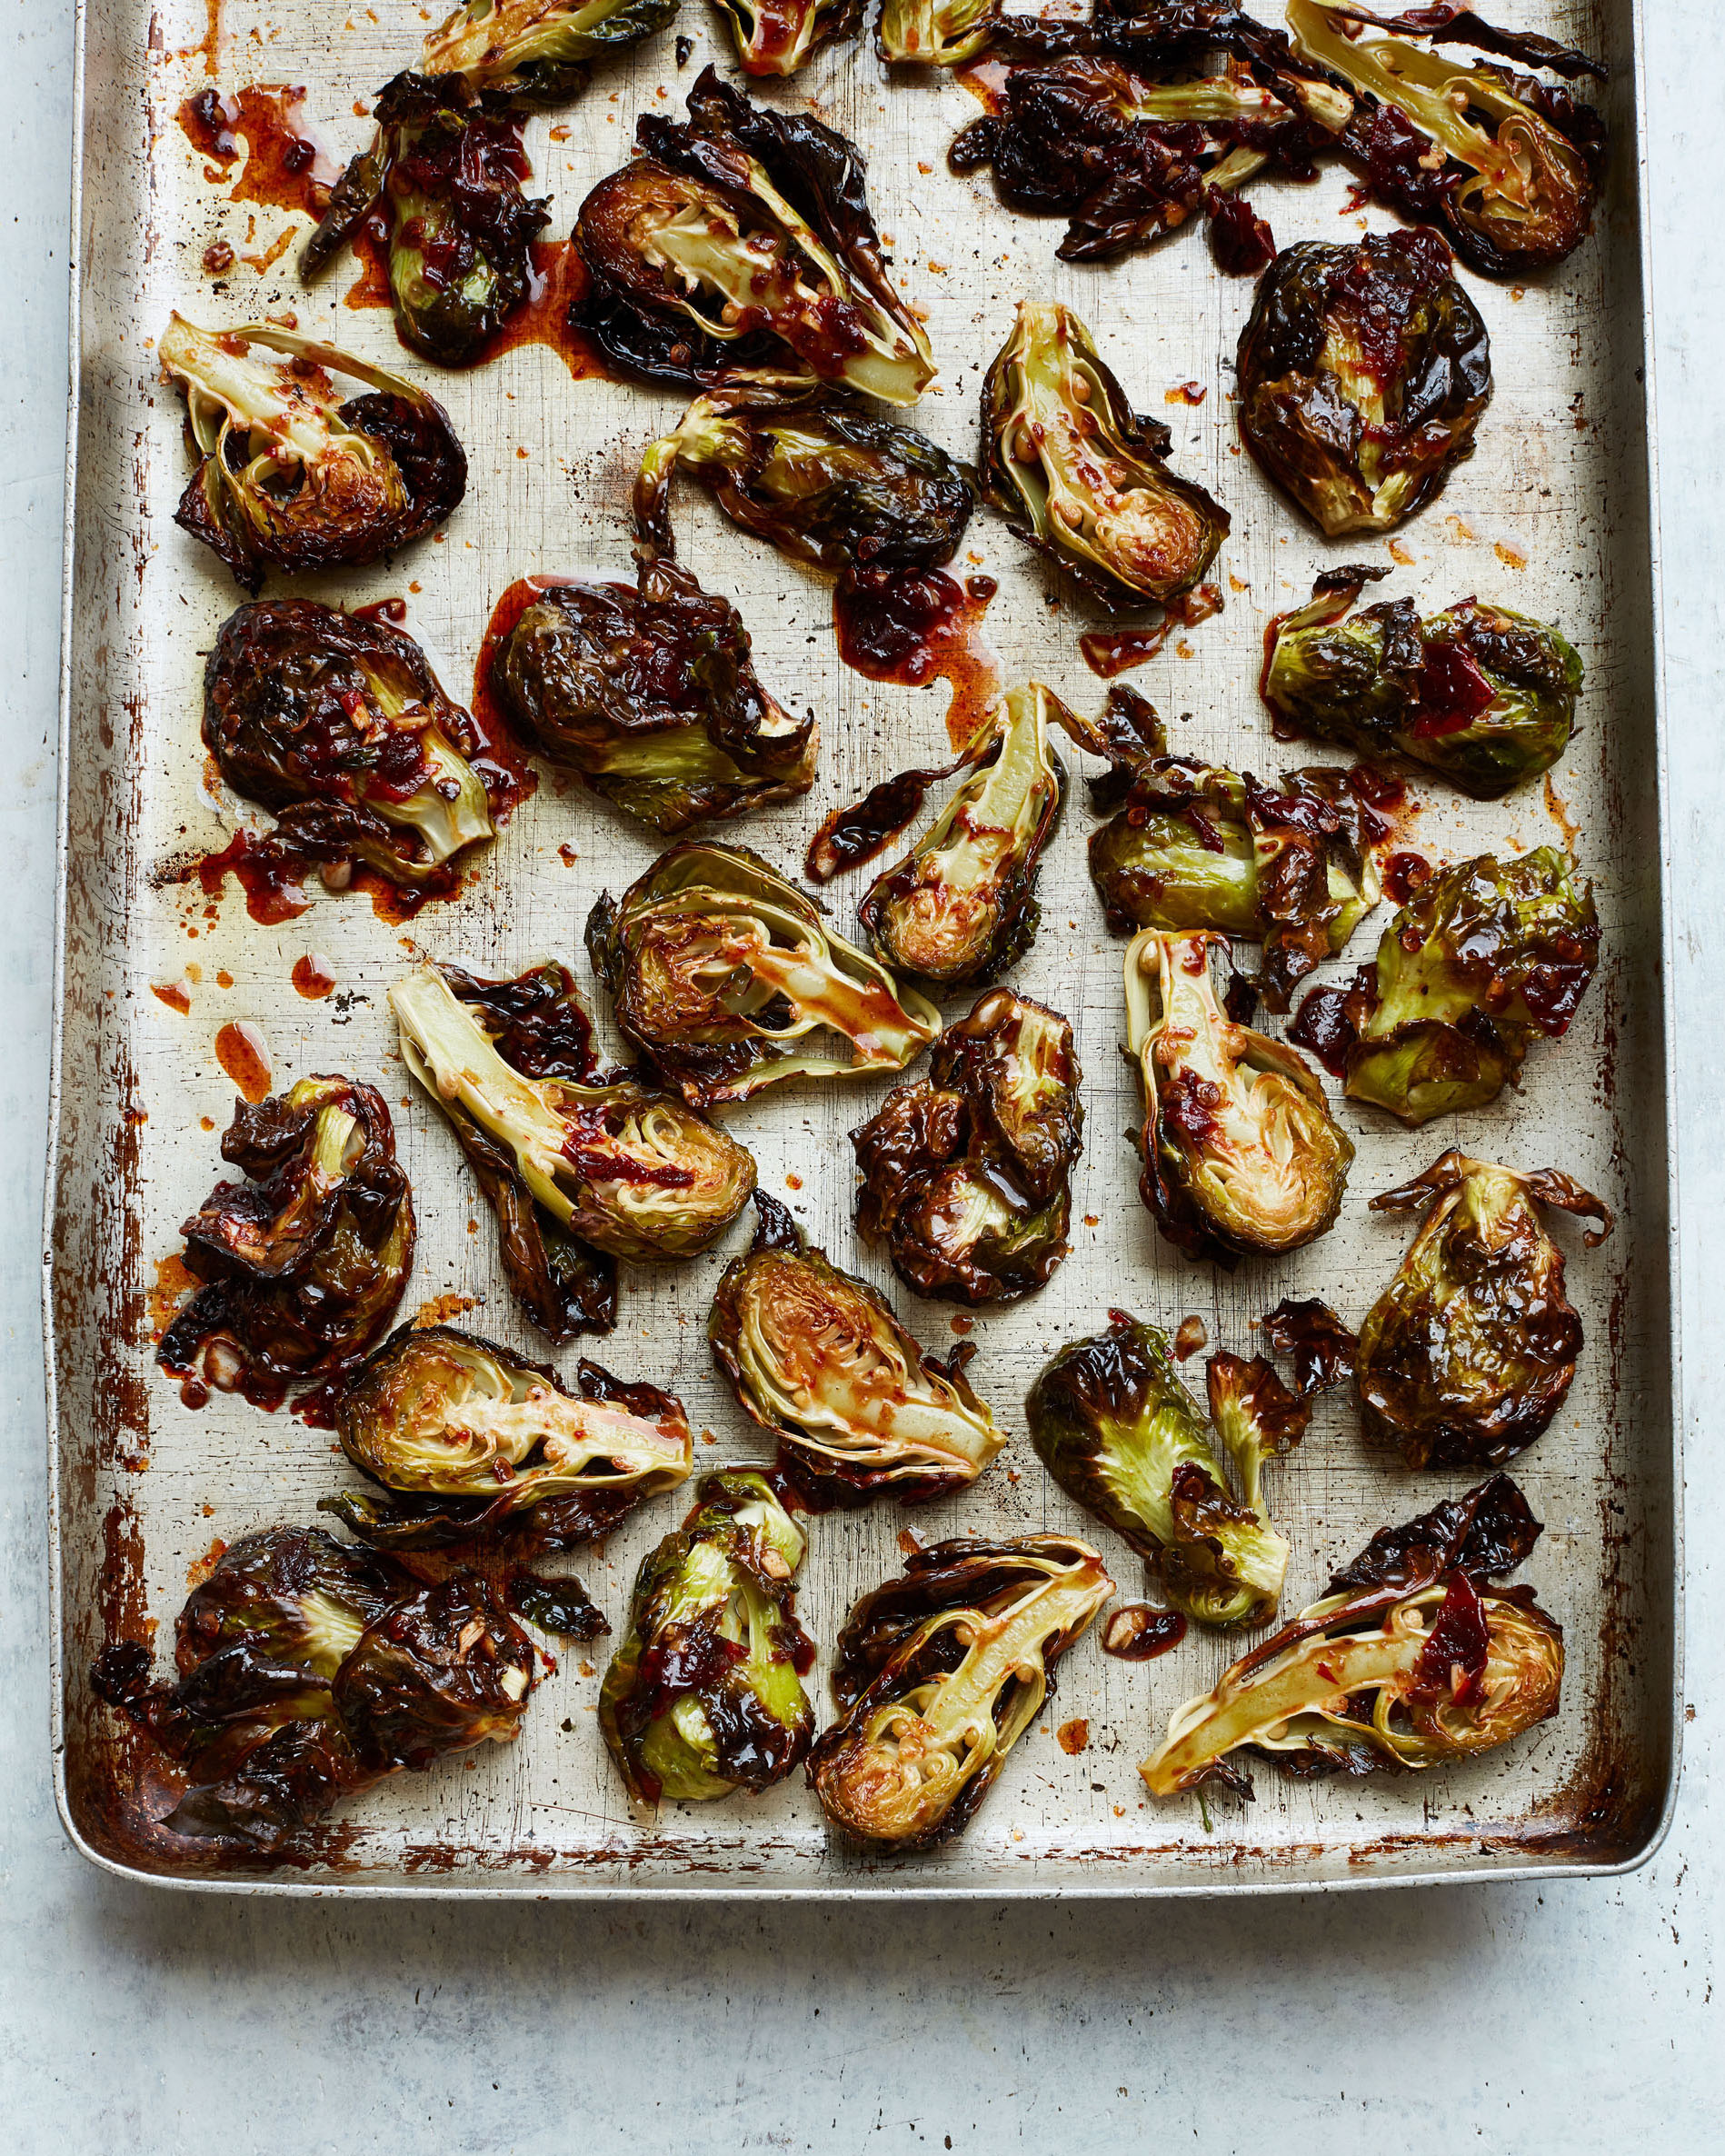 Roasted Brussels Sprouts with Honey-Chipotle Glaze Shira Bocar